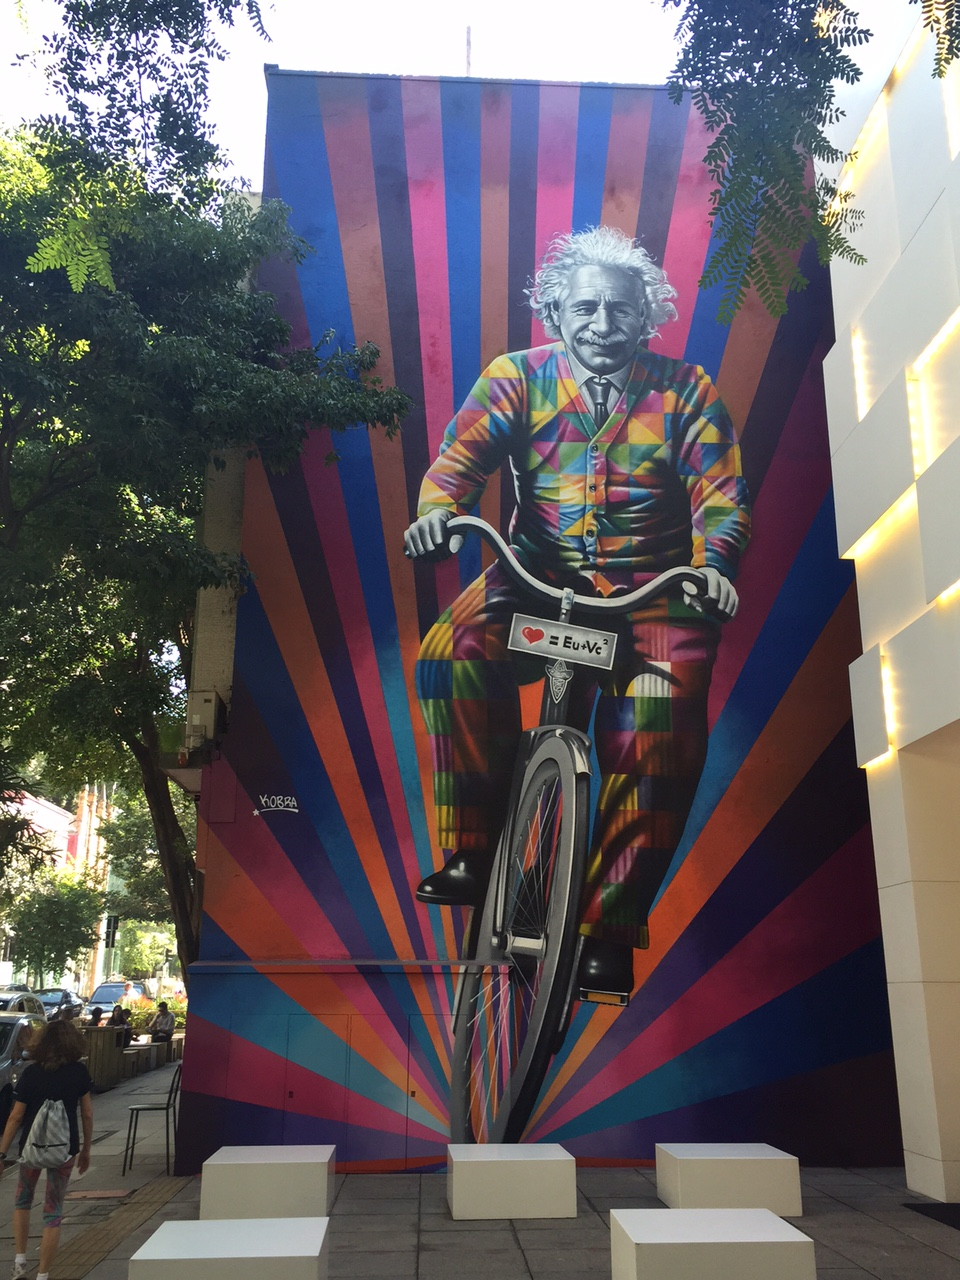 Genial is riding a bike - By Kobra in São Paulo, Brazil